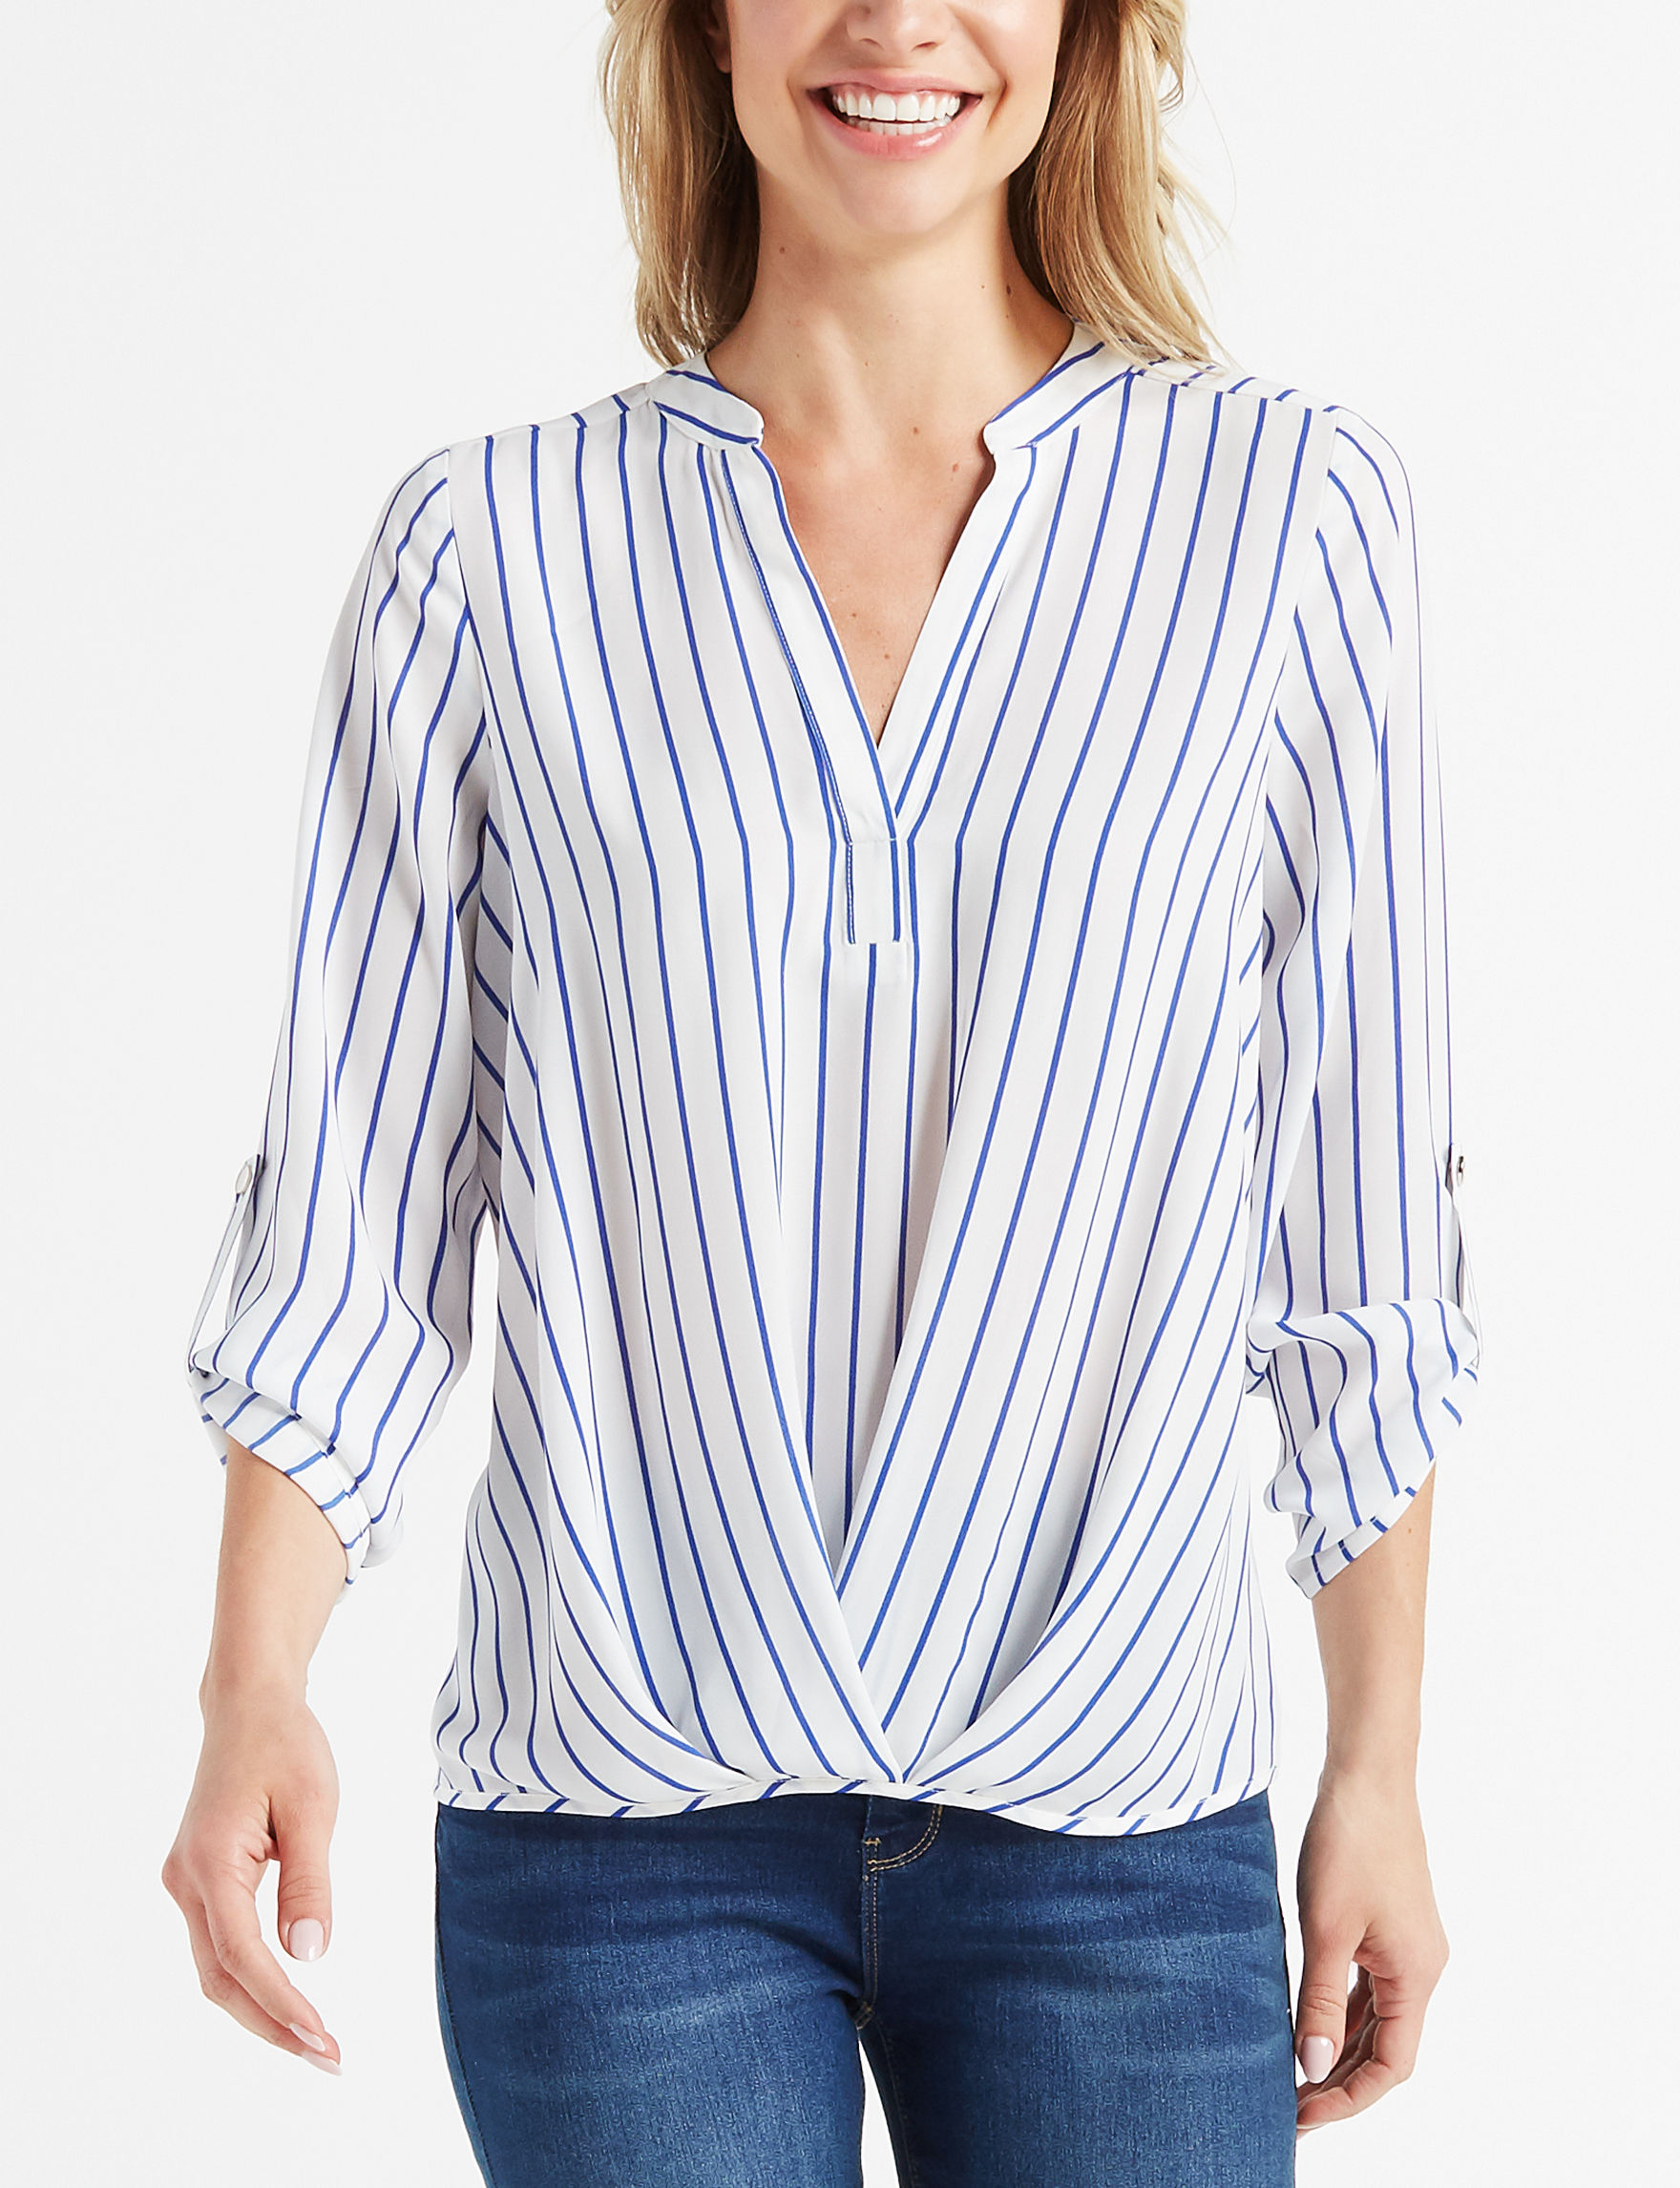 Isela White / Blue Shirts & Blouses